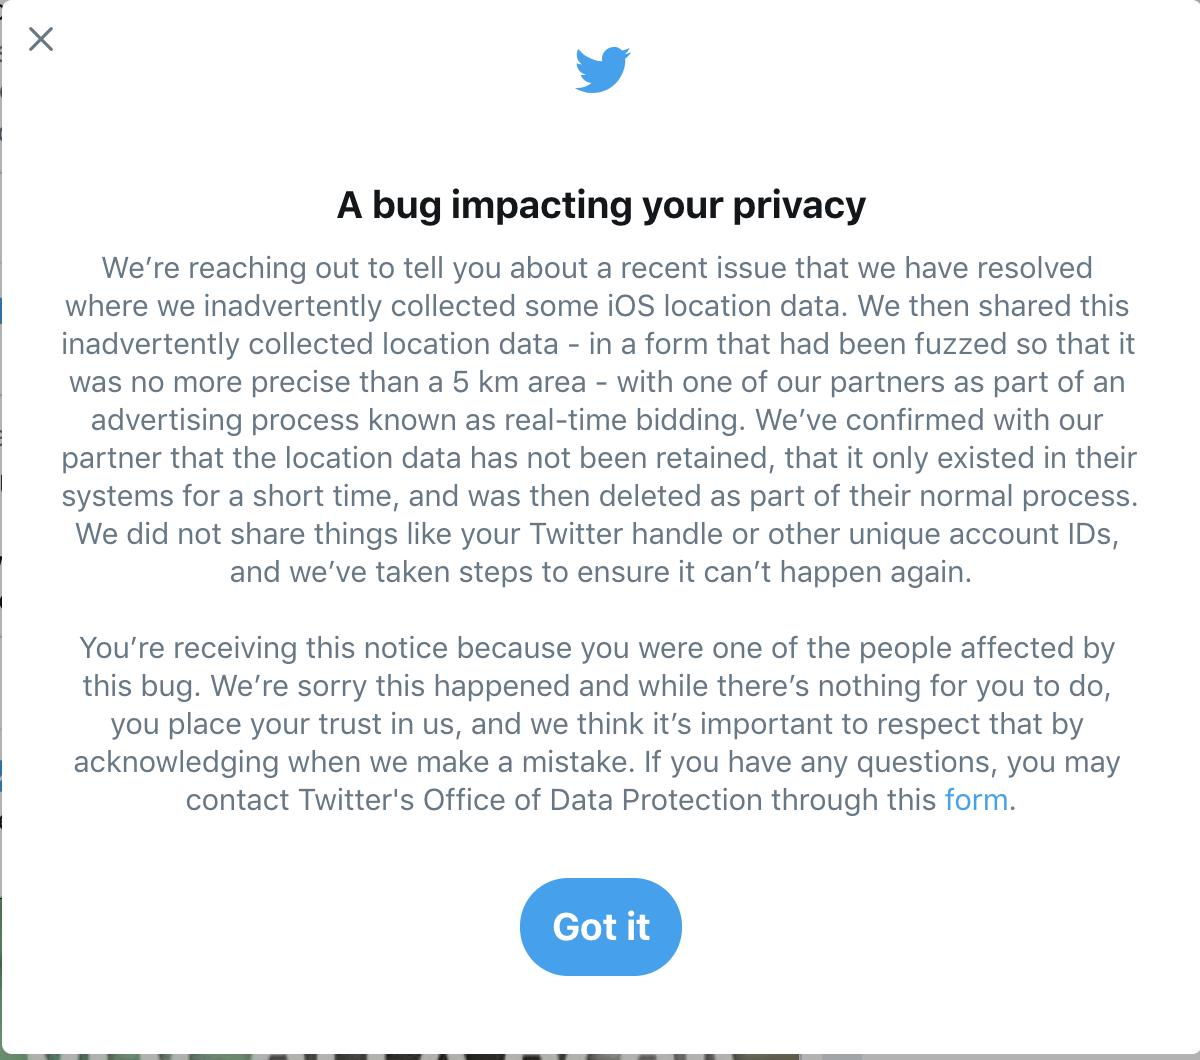 """Just got this ominous Twitter pop-up informing me that I'm a victim of its latest privacy mishap:   """"We're sorry this happened and there's nothing for you to do."""""""